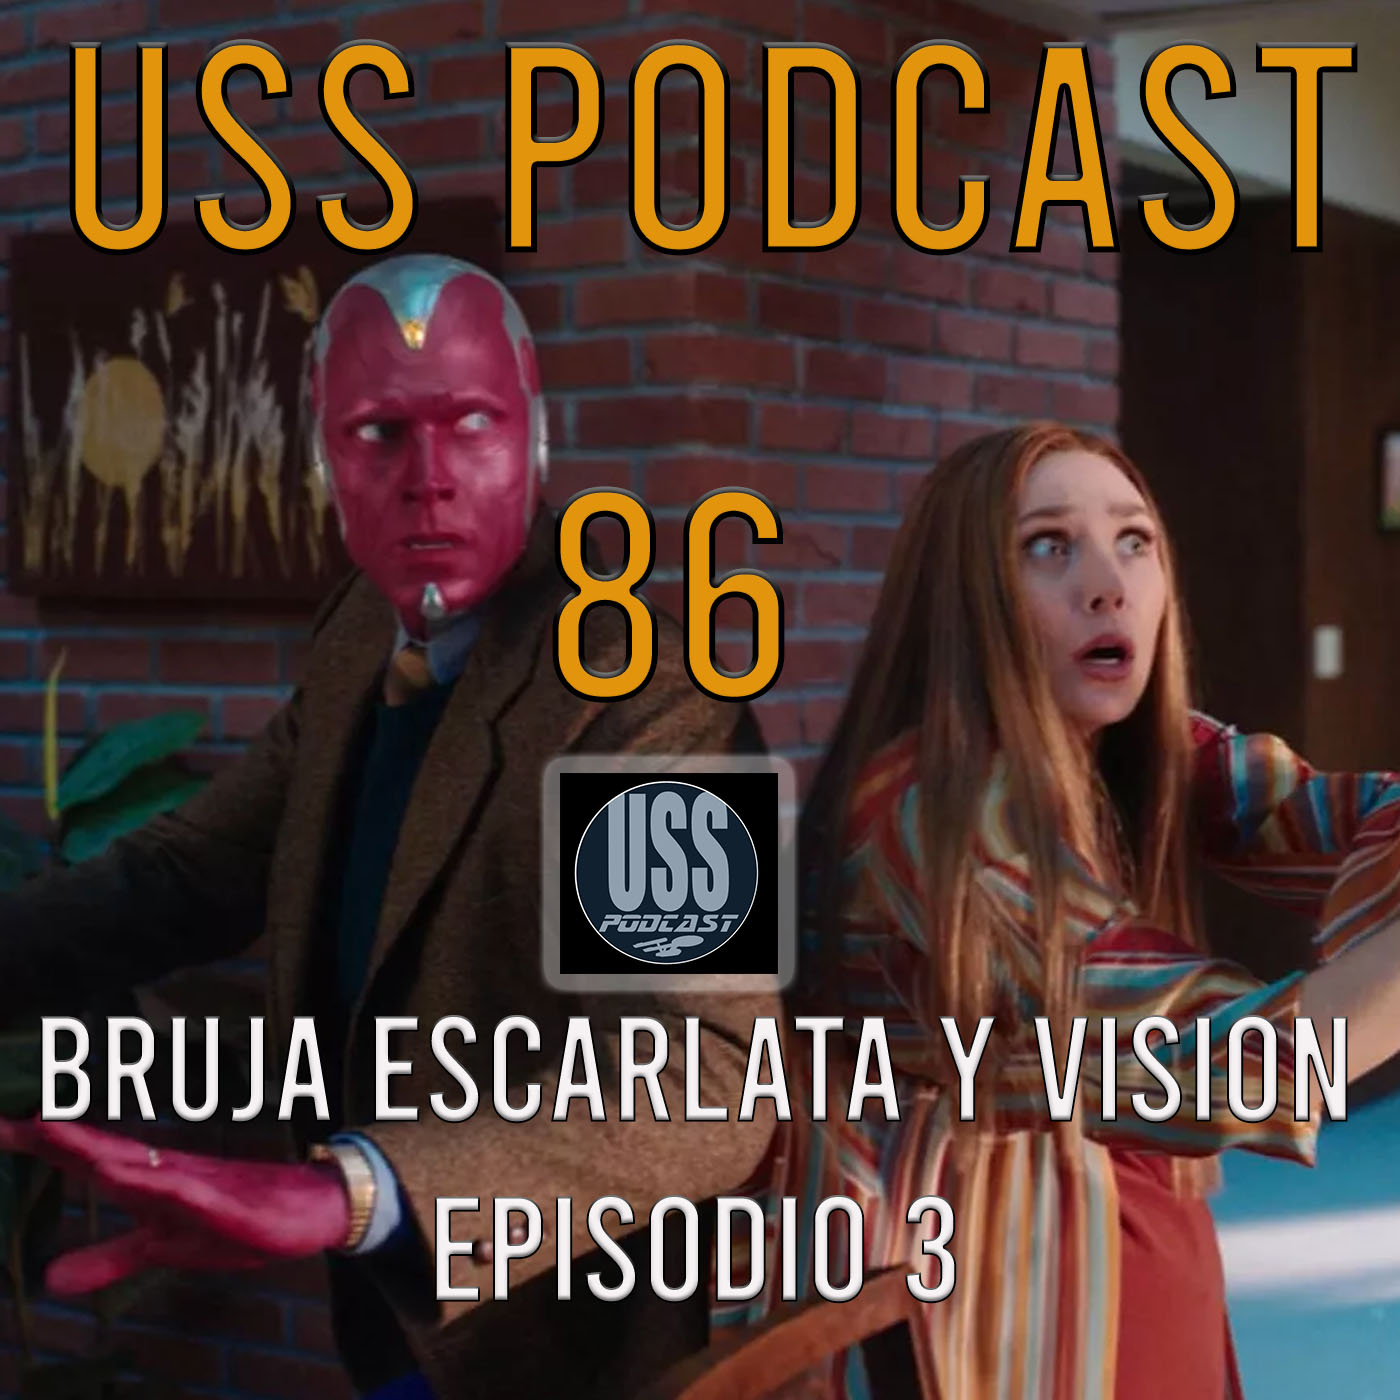 Bruja Escarlata y Vision Episodio 3 USS Podcast 86